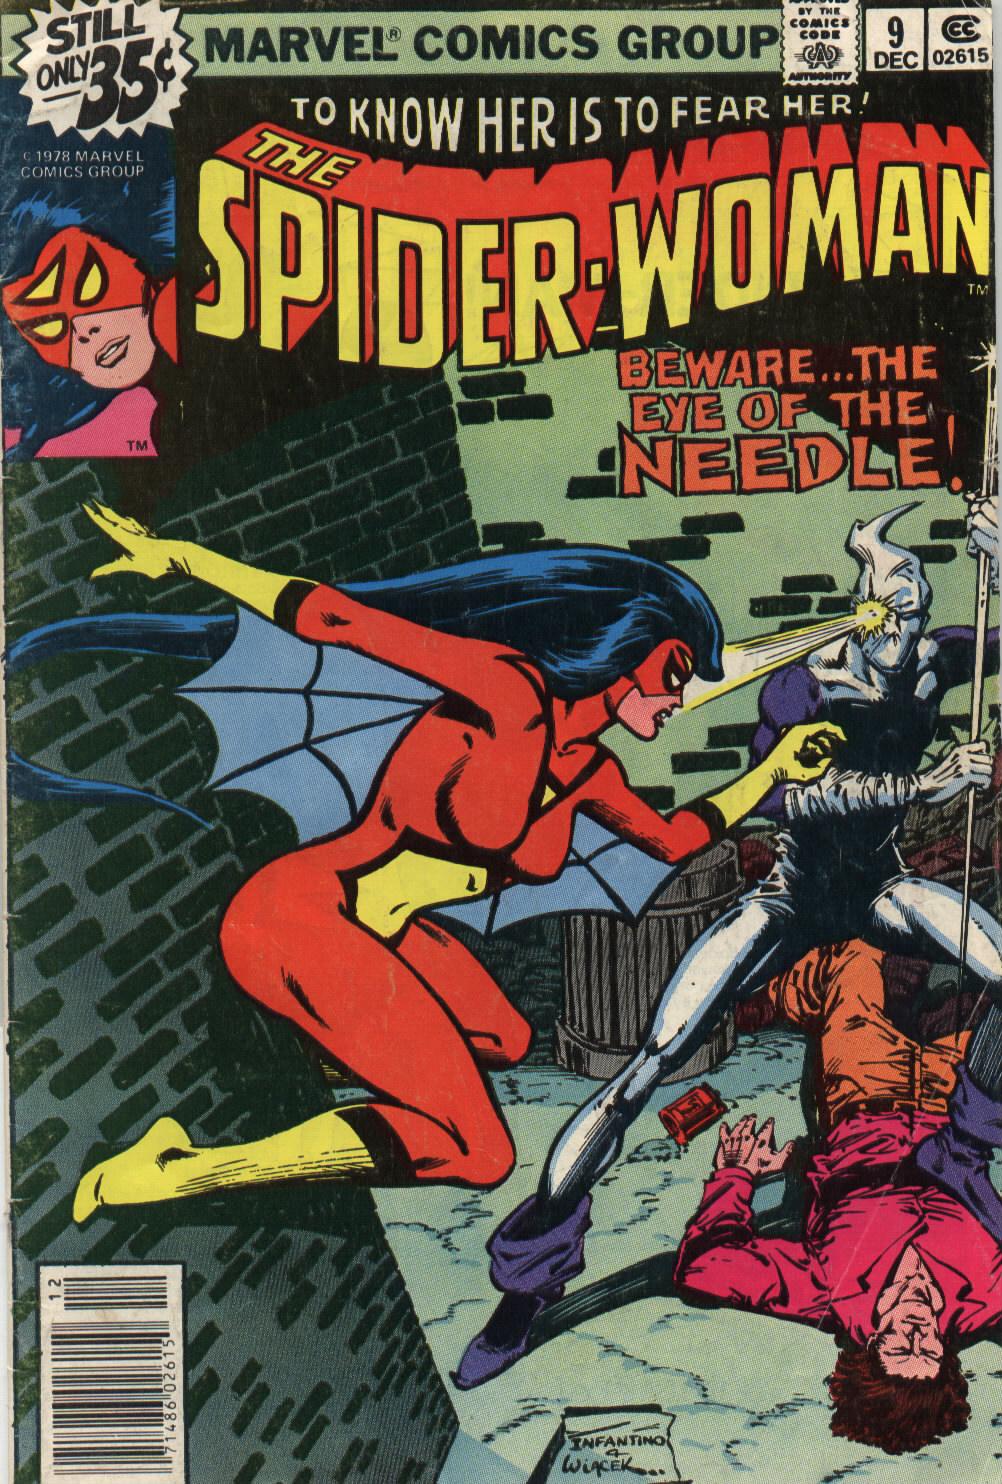 Spider-Woman (1978) #9, cover penciled by Carmine Infantino & inked by Bob Wiacek.